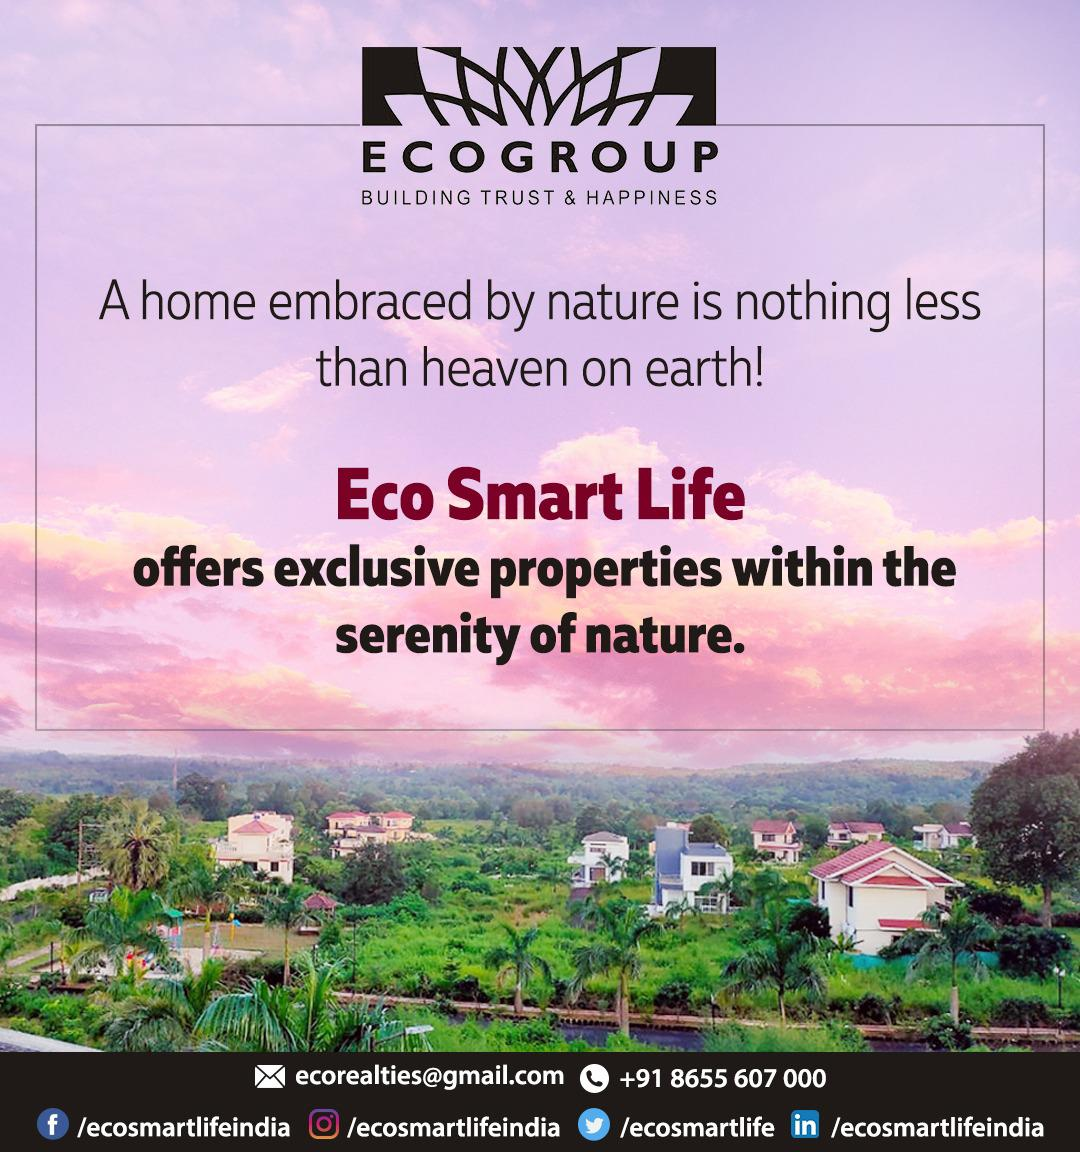 Eco Smart Life offers exclusive properties within the serenity of nature.😍  For further details, 📩 ecorealties@gmail.com 📞 +91 8655607000 - #ecosmartlife #nature #palmvillage #weekendhome #weekendgetaways #investment #naturelove #beautynature